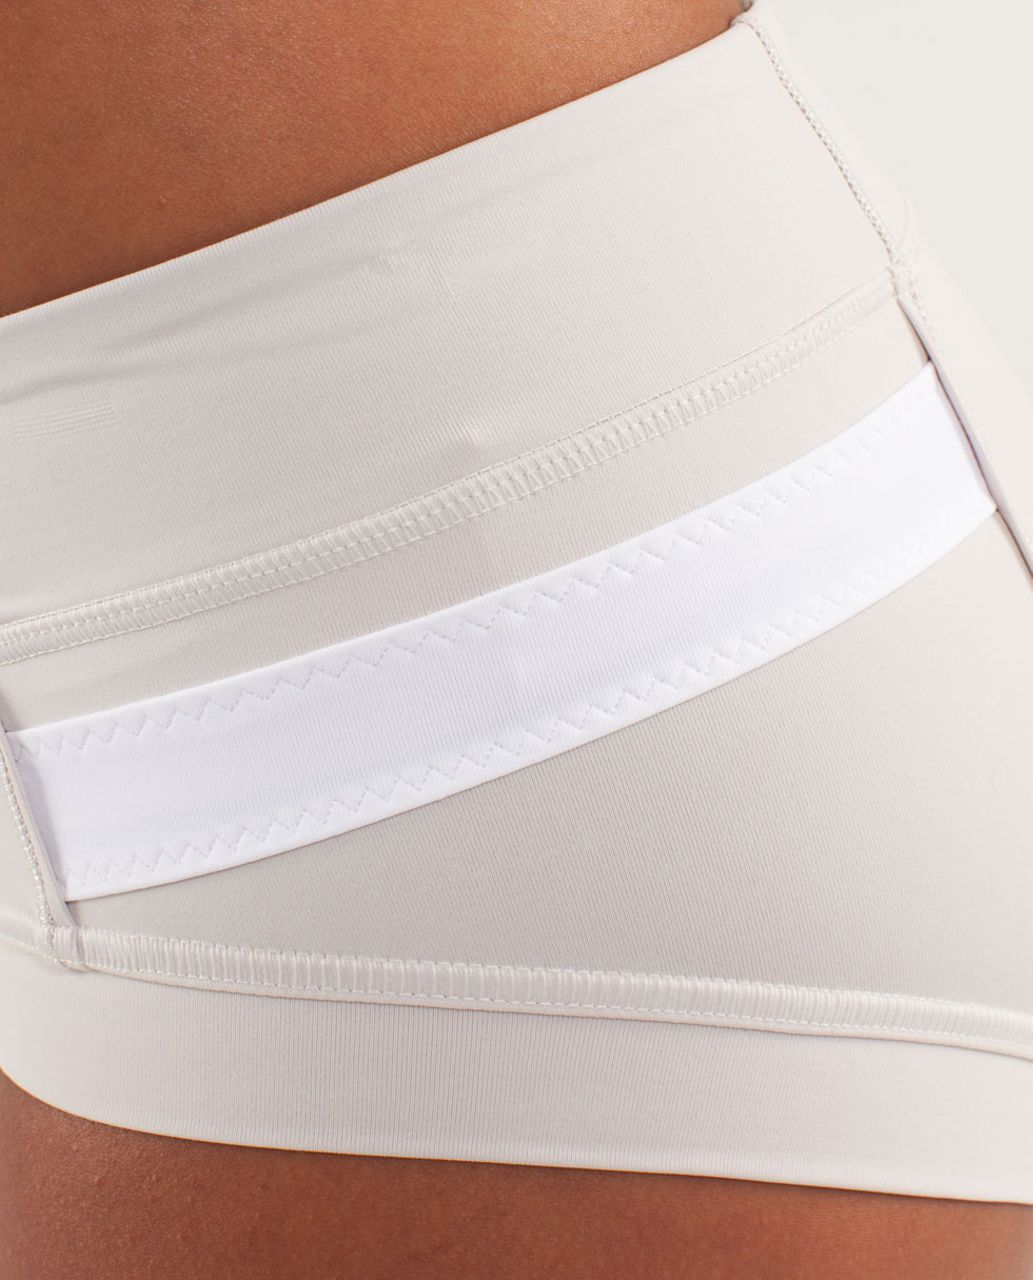 Lululemon Heat It Up Short - Dune / White